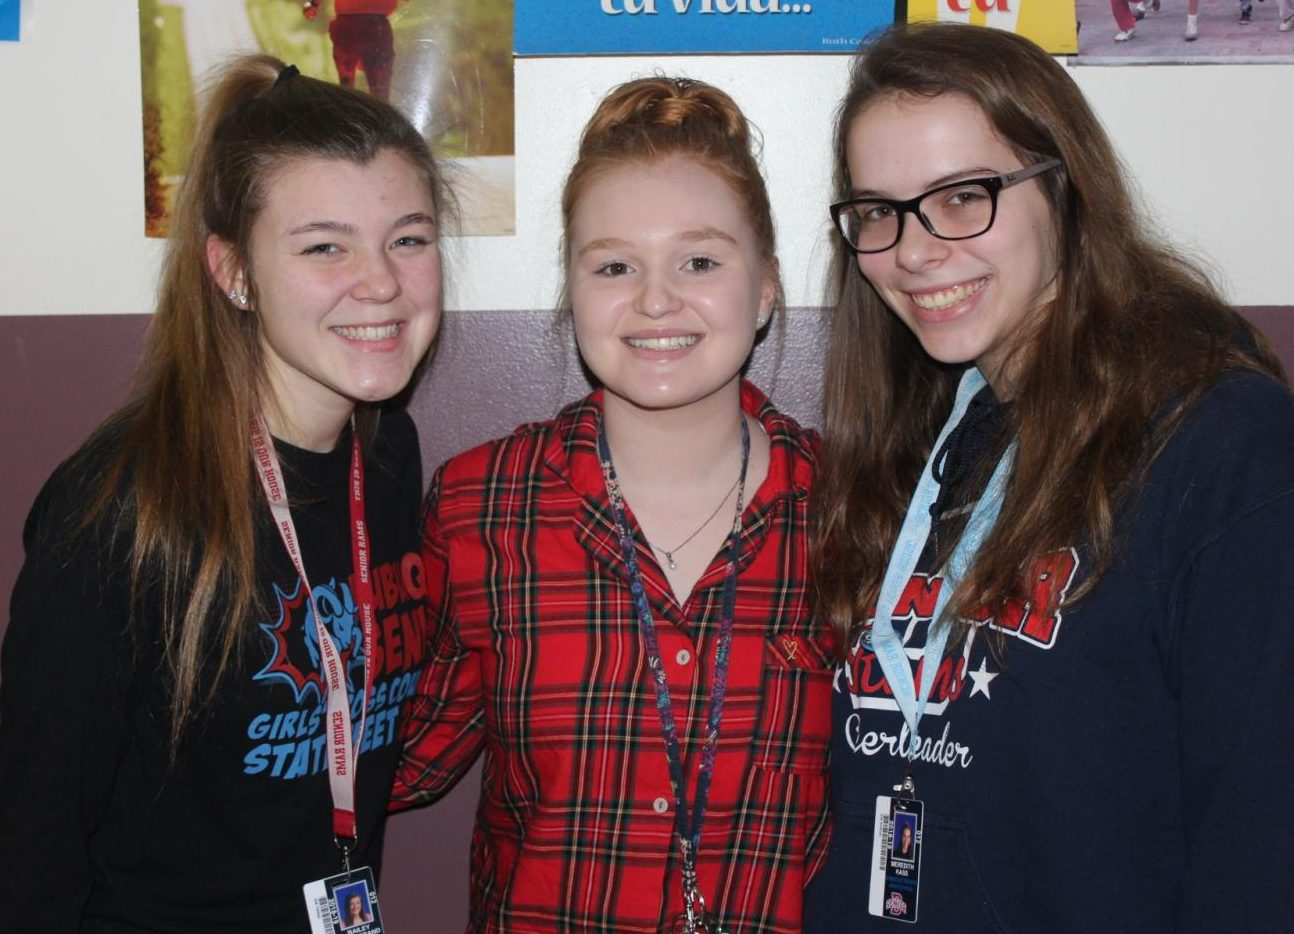 Bailey Hammerand (12), Maddi Lyons (12), and Meredith Kass (12) show off their PJs during Snowcoming week. The group could just as easily have been heading to a sleepover!